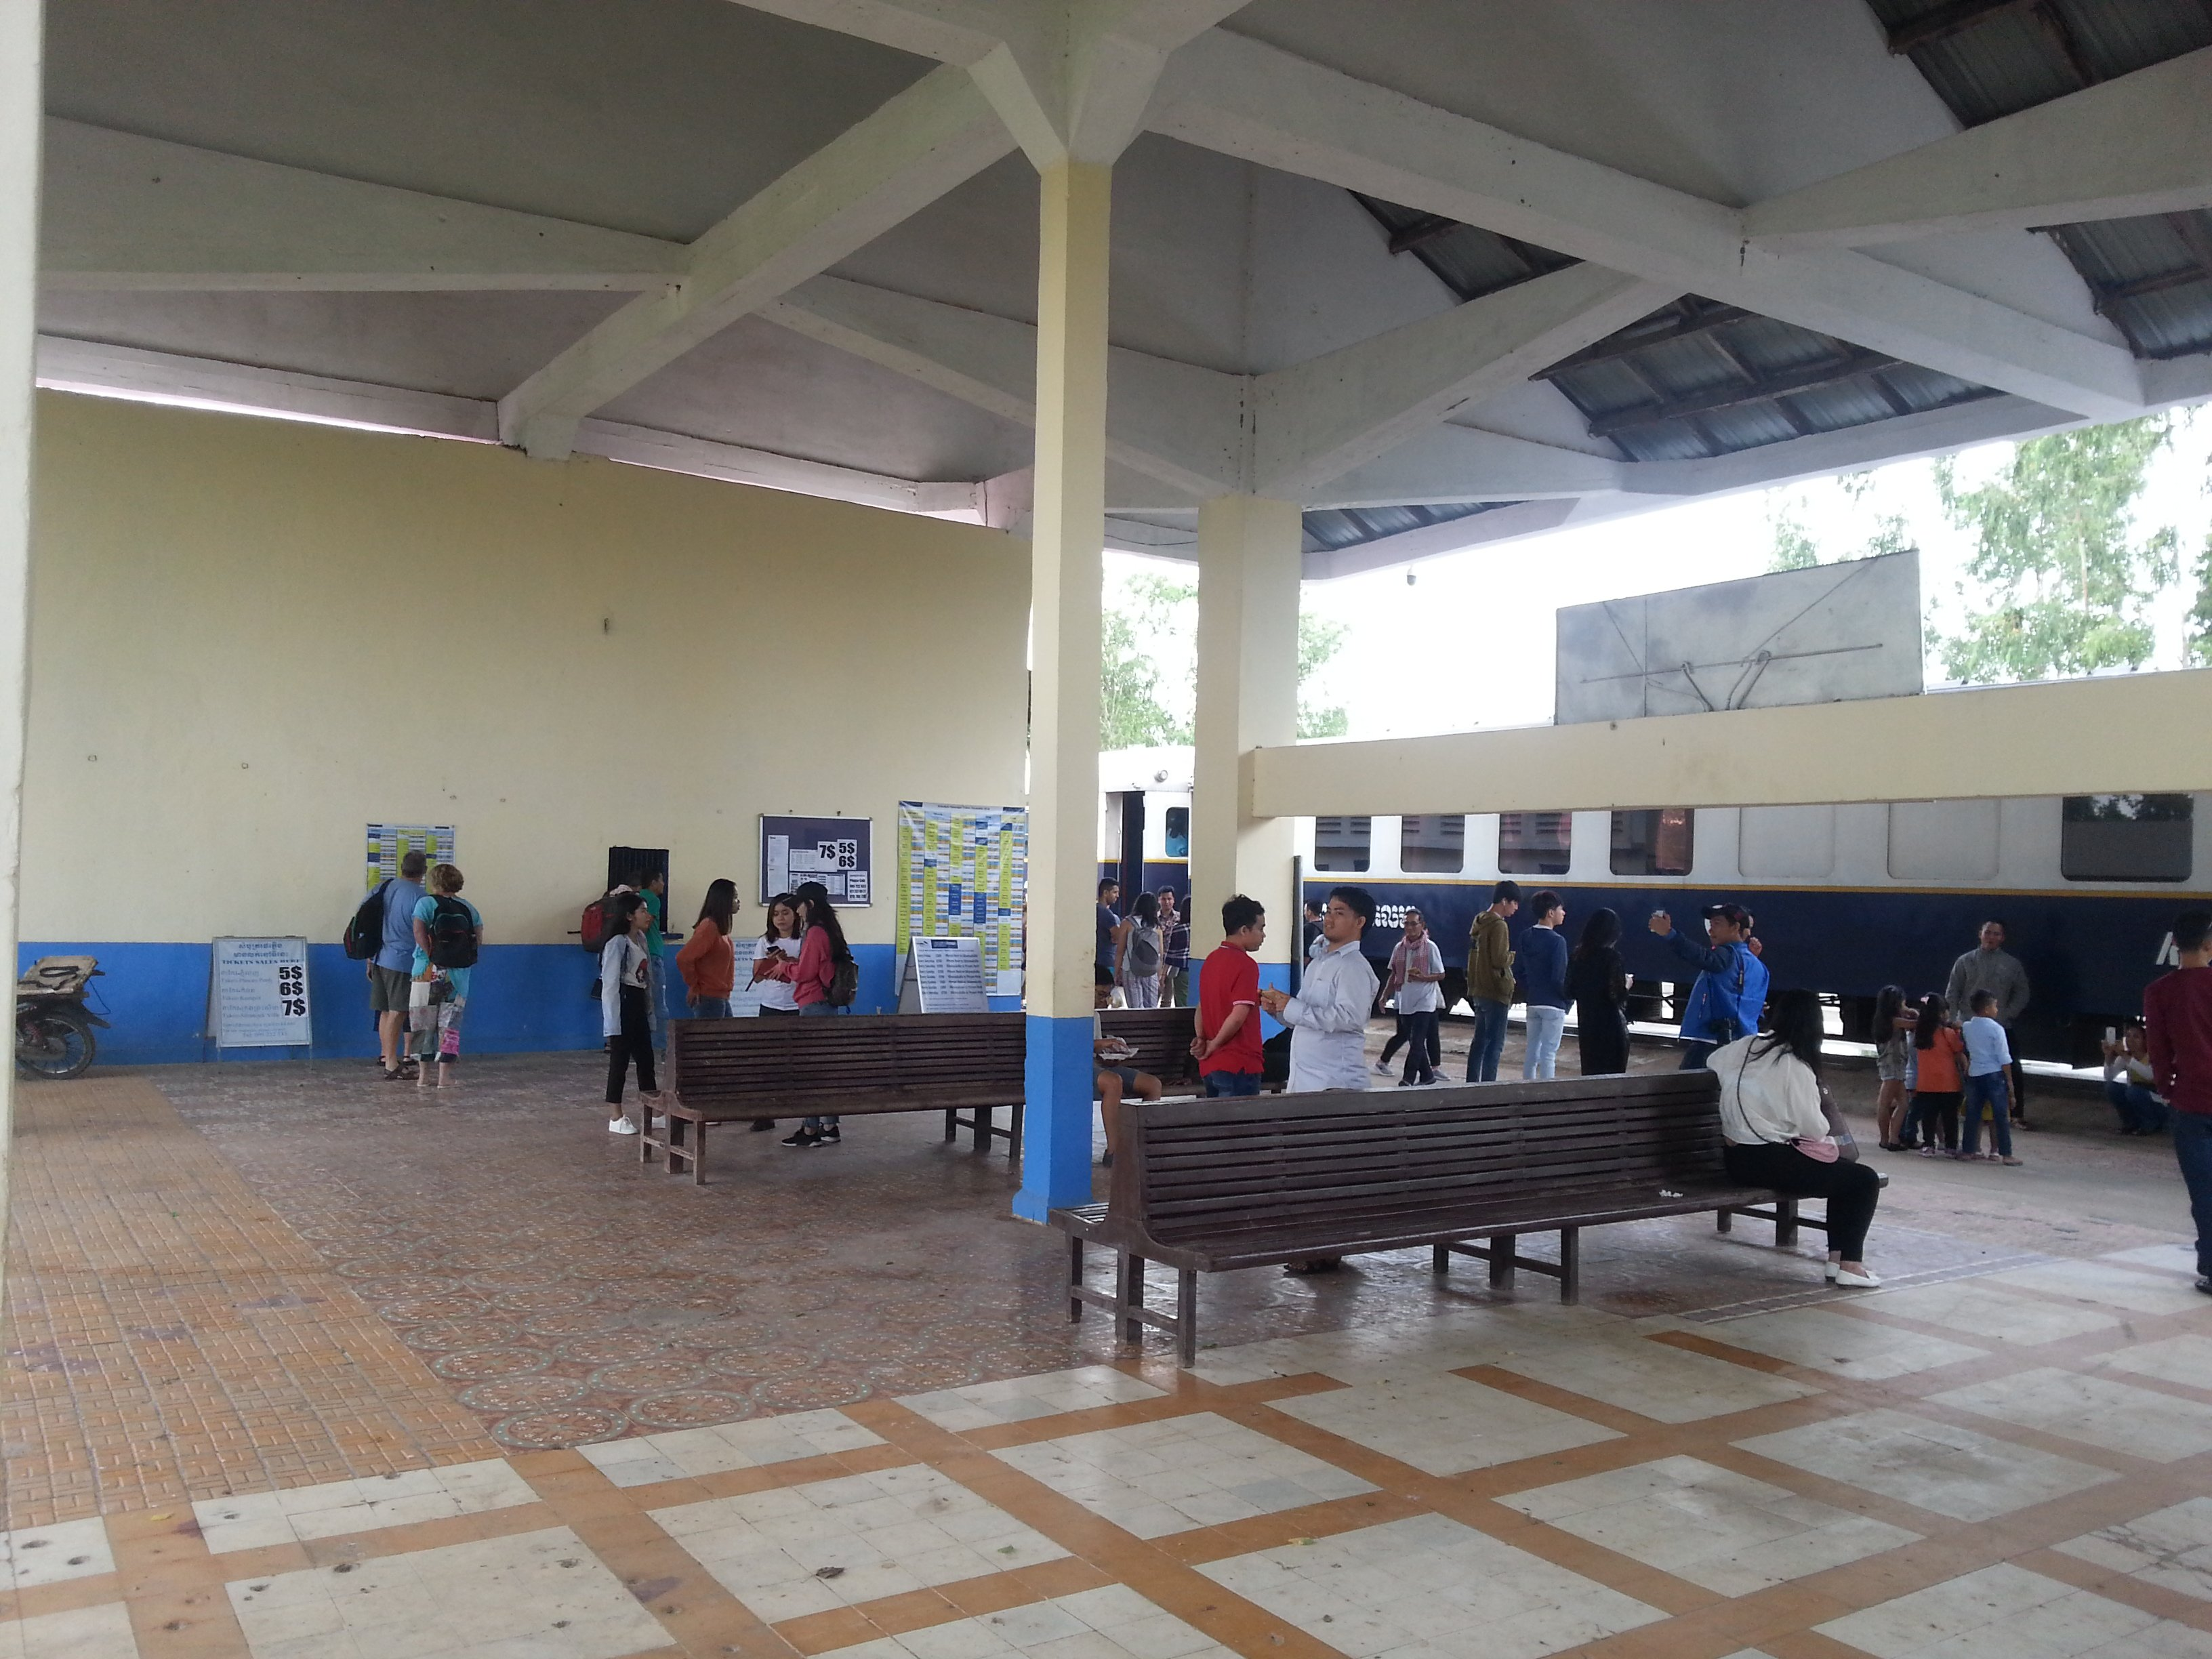 Waiting area at Takeo Railway Station